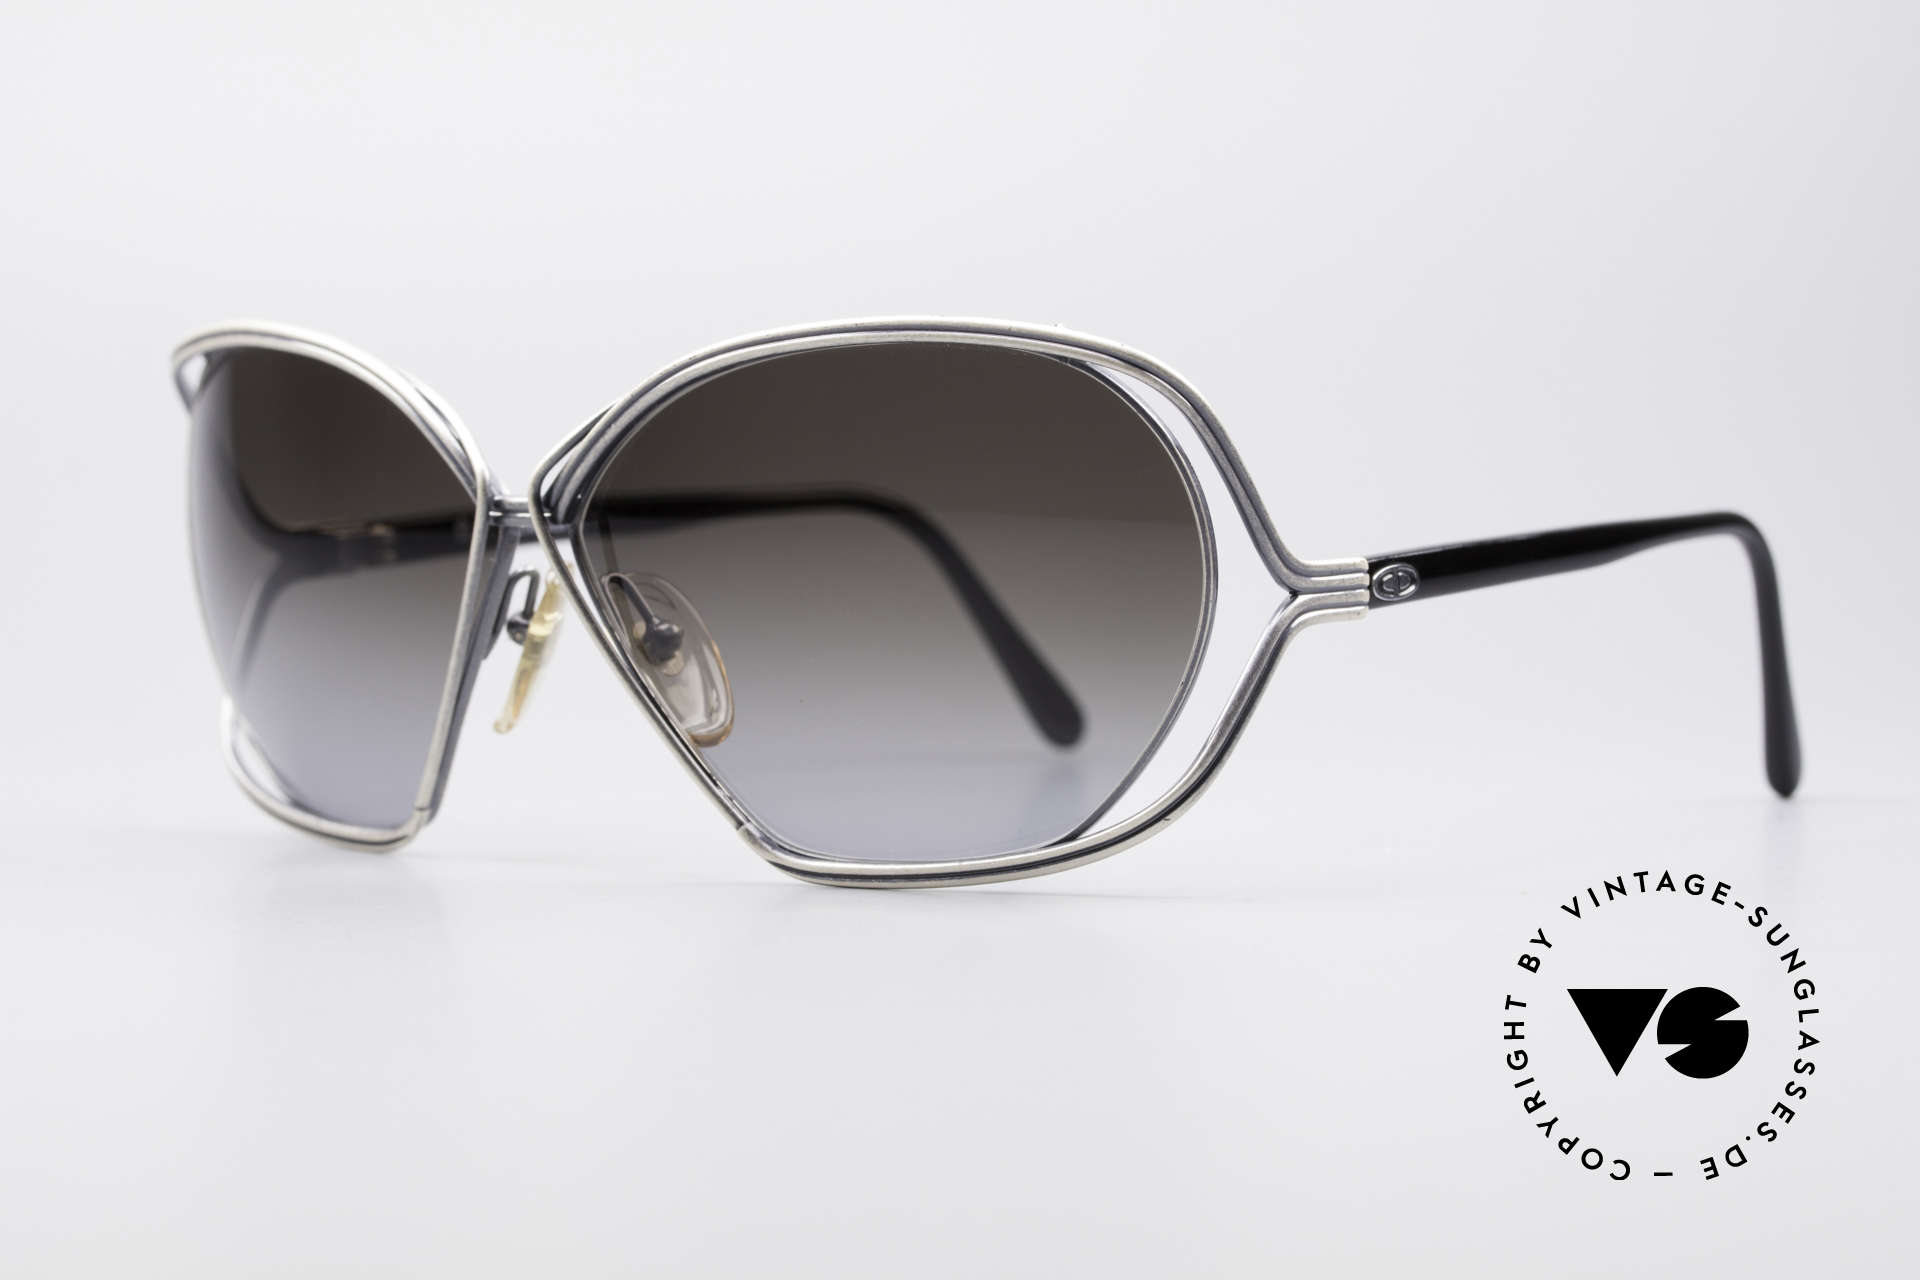 Christian Dior 2499 Ladies Sunglasses 80's, artistical wired metal frame (unique & full of verve), Made for Women